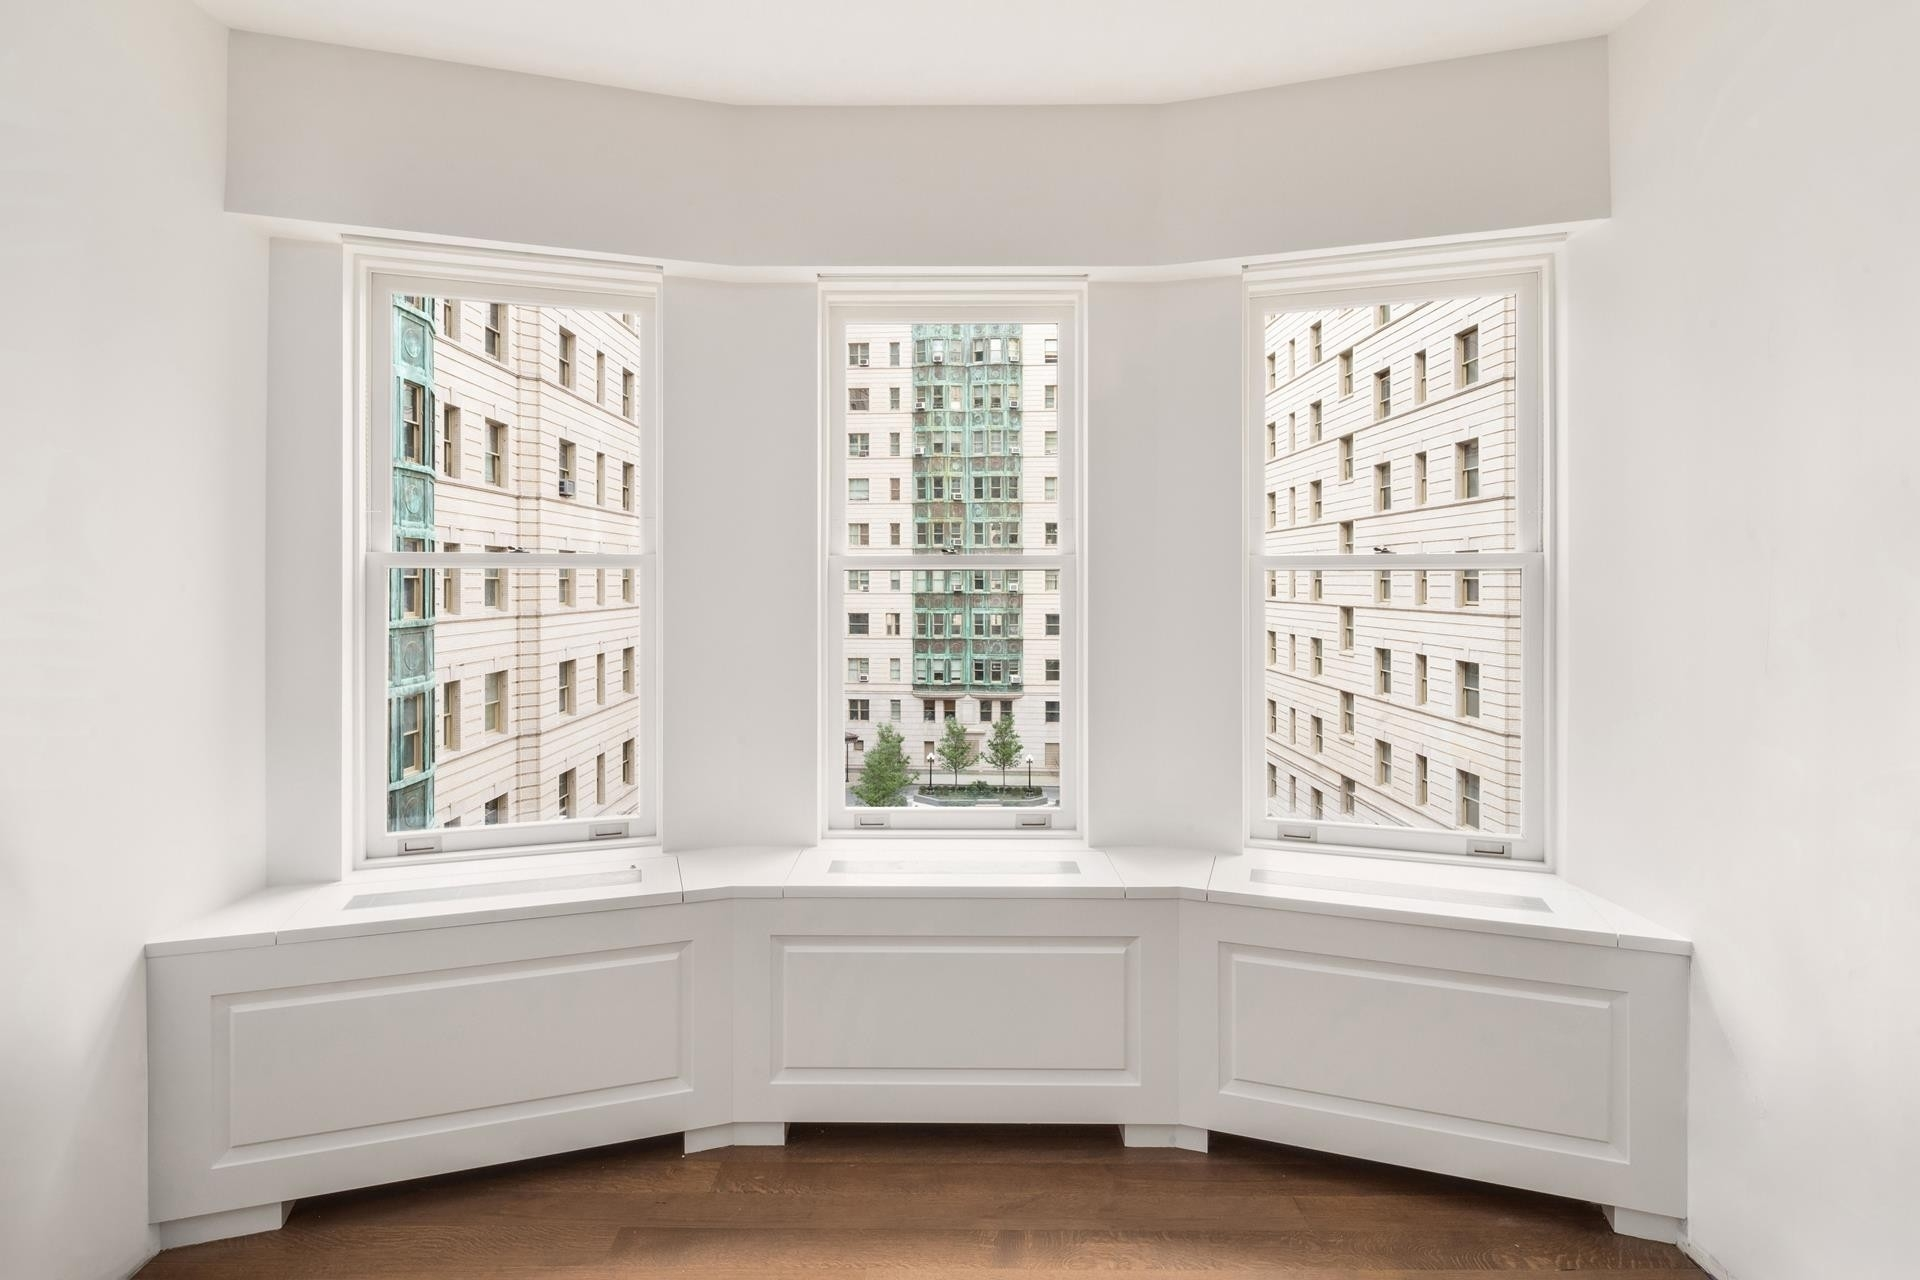 6. Condominiums for Sale at The Belnord, 225 West 86th St, 1103 Upper West Side, New York, NY 10024